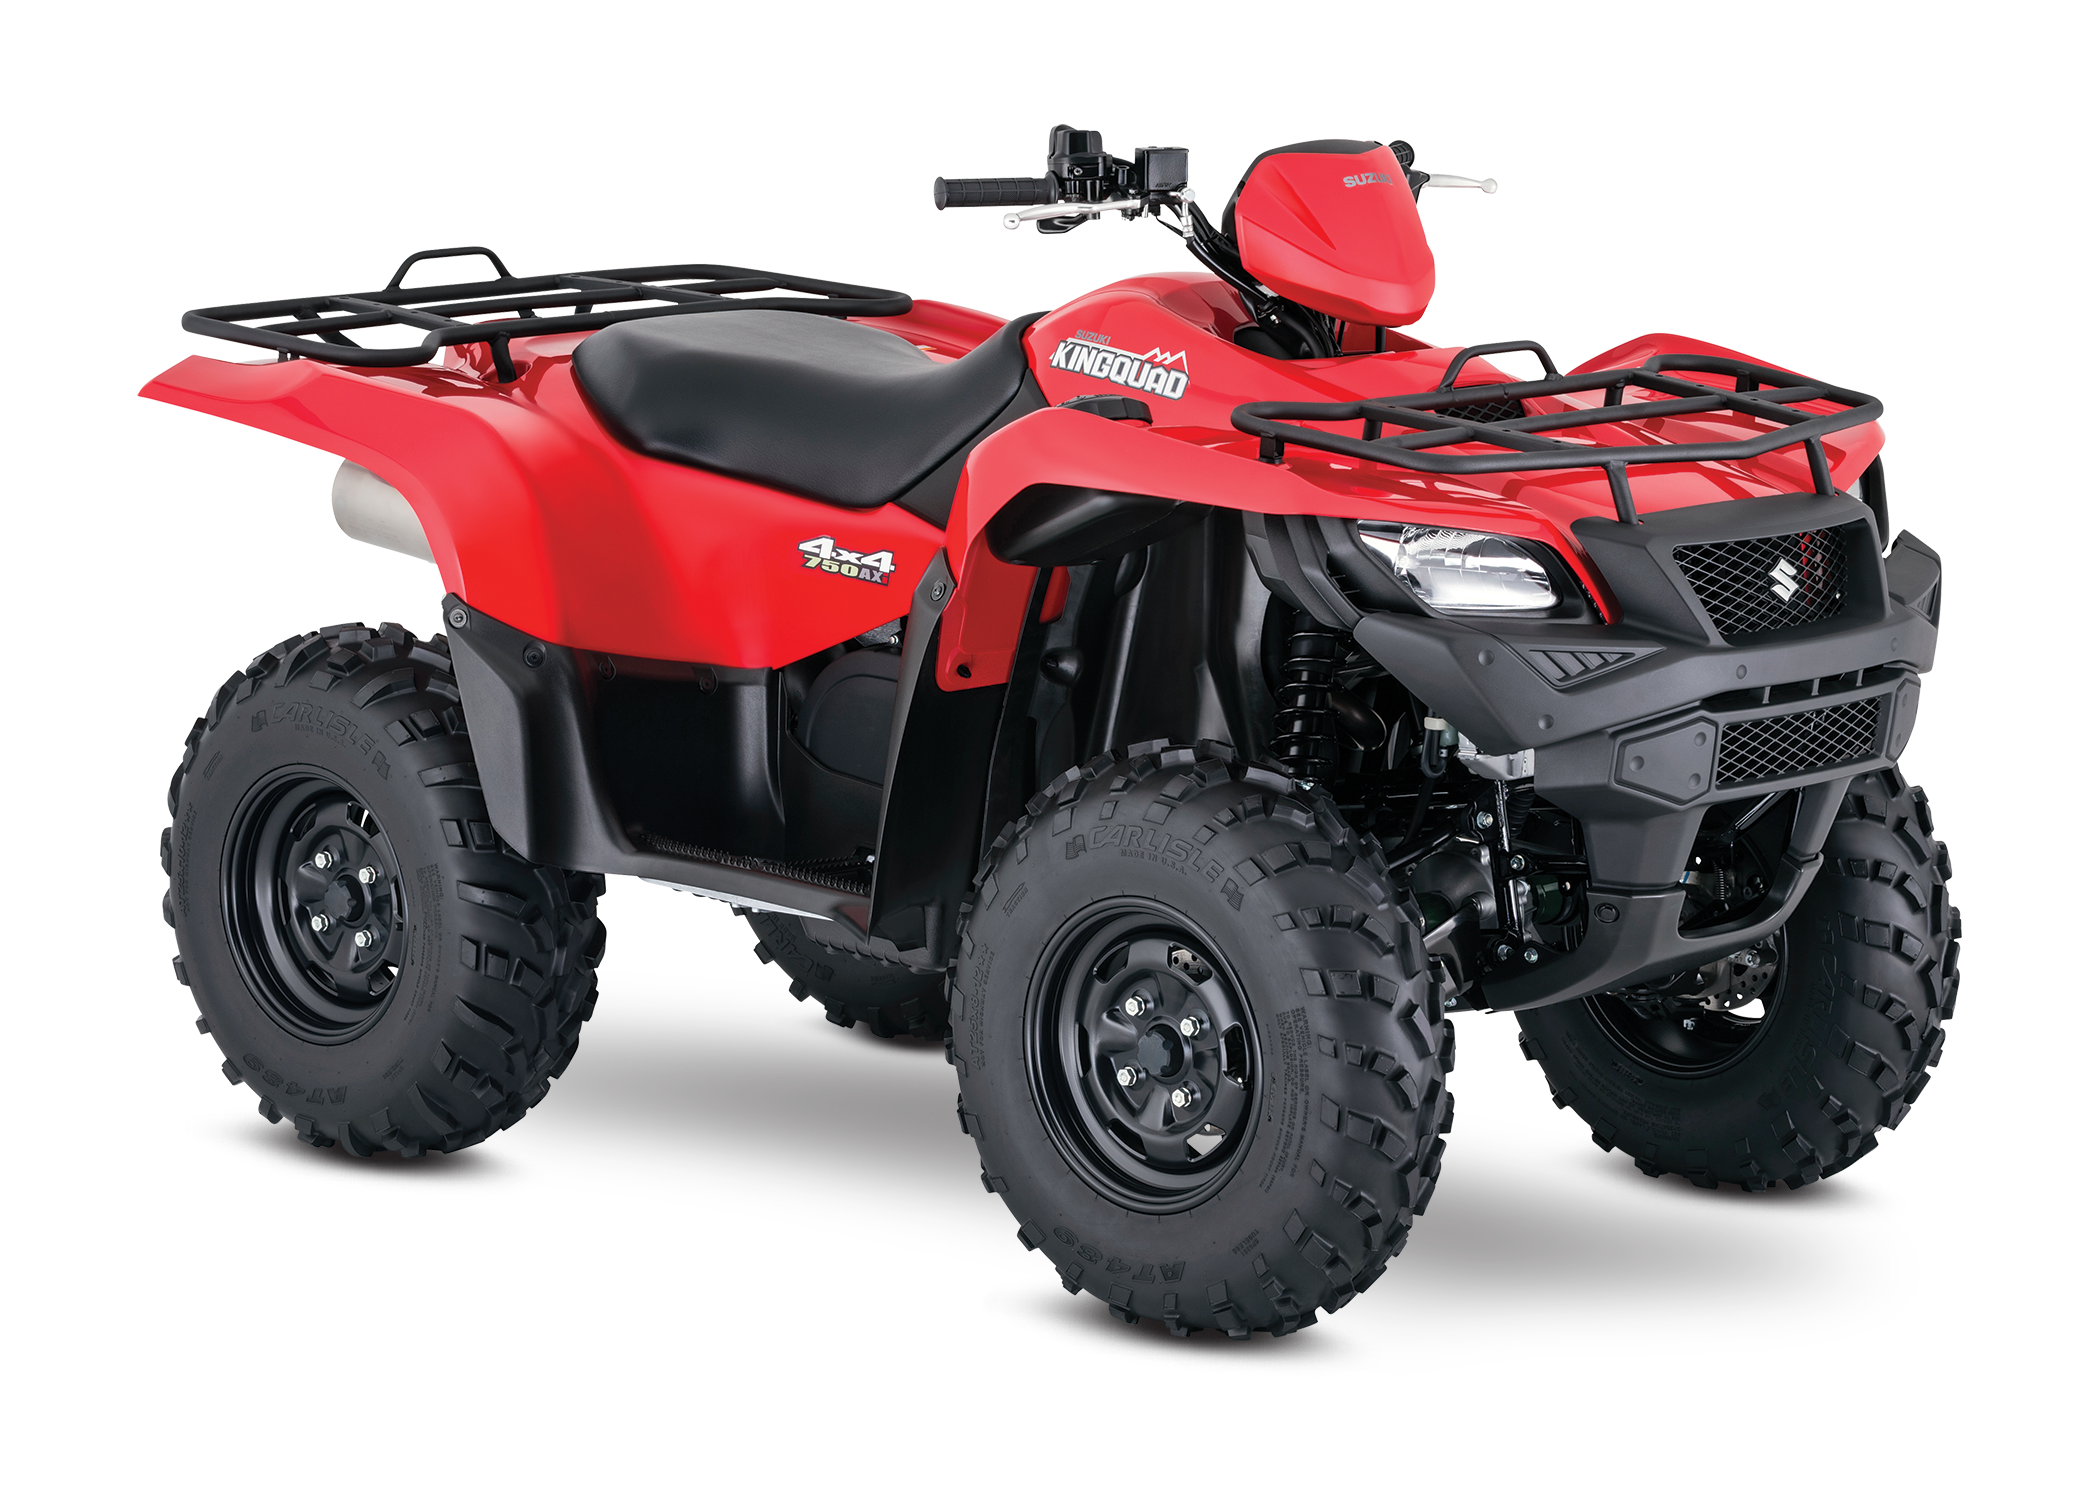 2016 suzuki king 56f98deadee8e